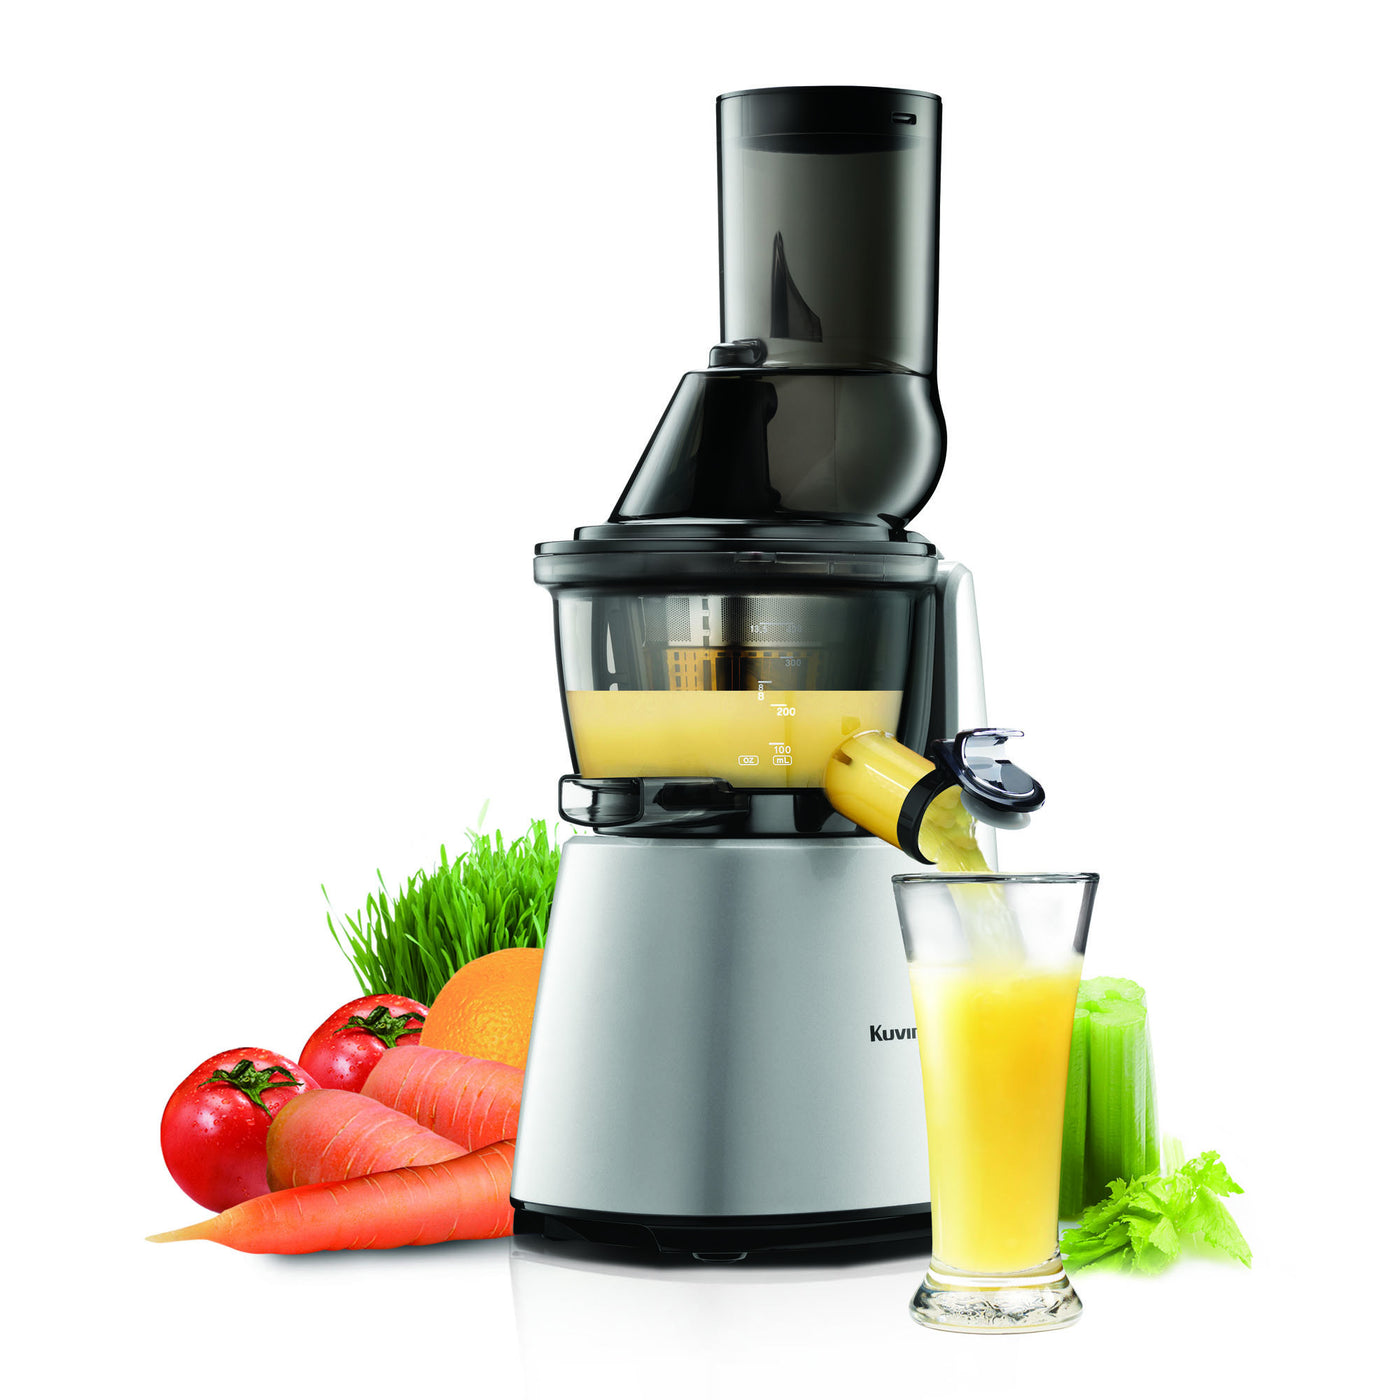 Kuvings Whole Slow Juicer Elite C7000 Silver : Kuvings Elite Whole Slow Juicer C7000 Juicerville